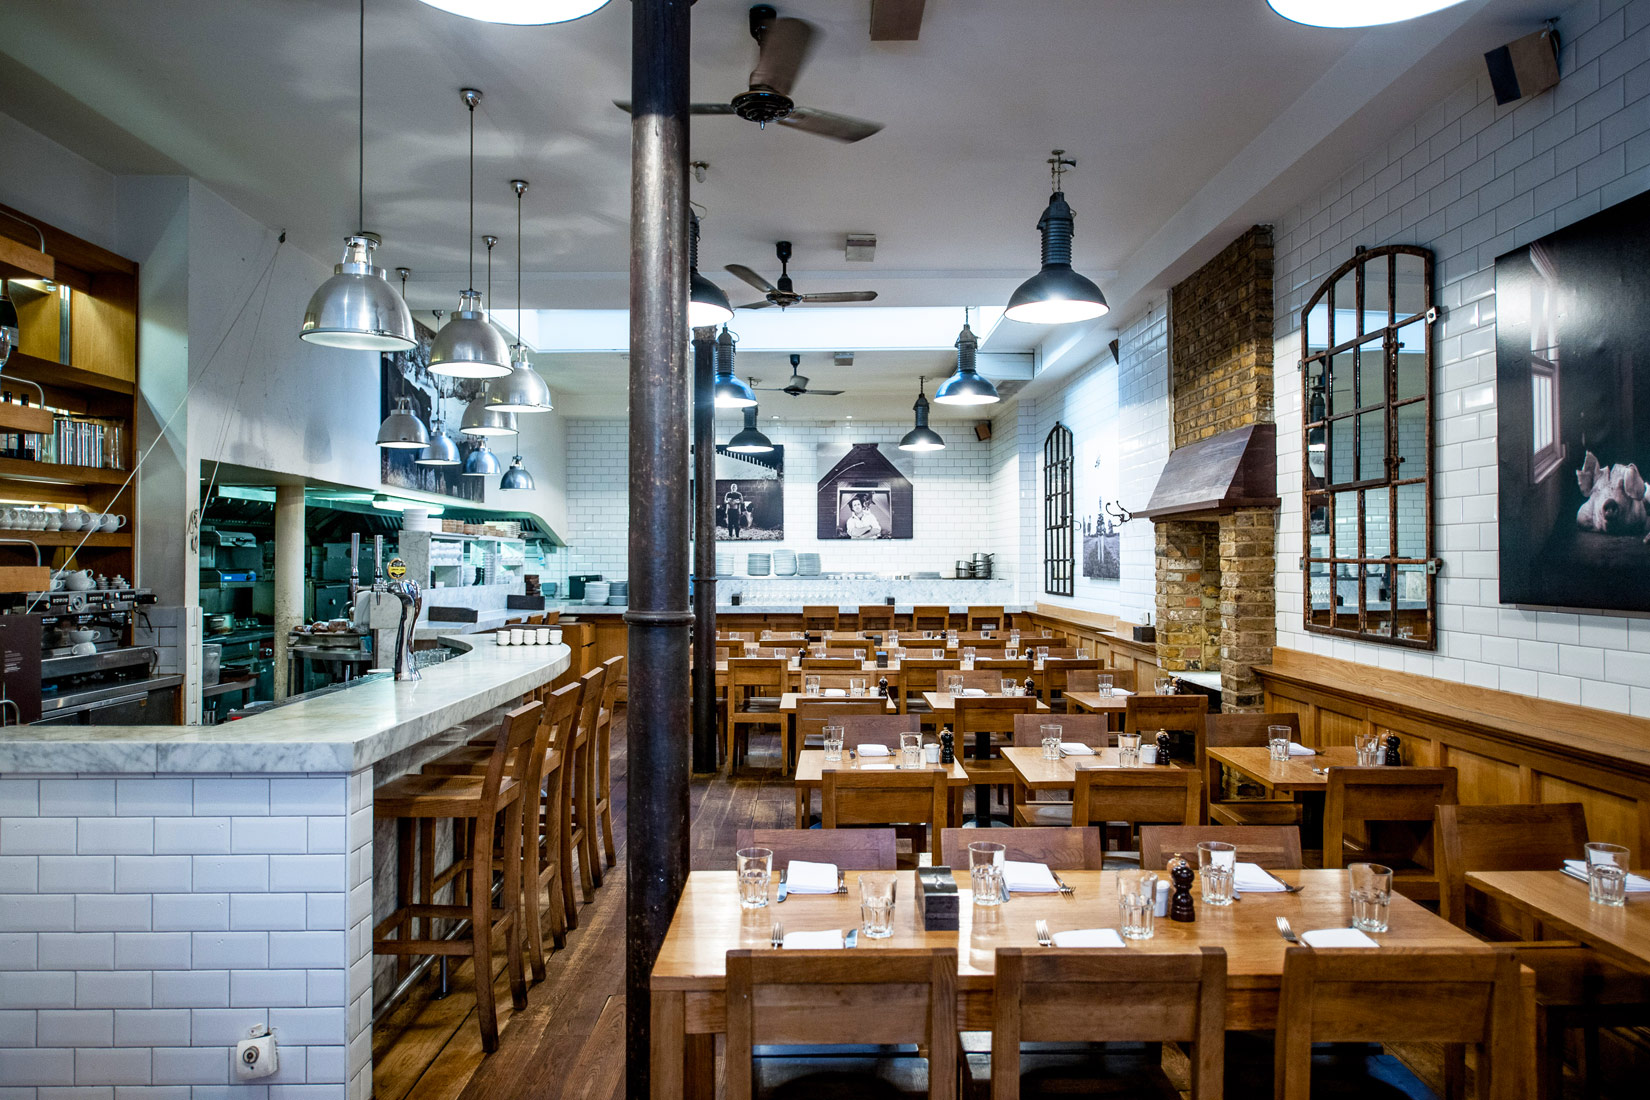 Tom's Kitchen in Chelsea. Photograph by David Griffen Photography